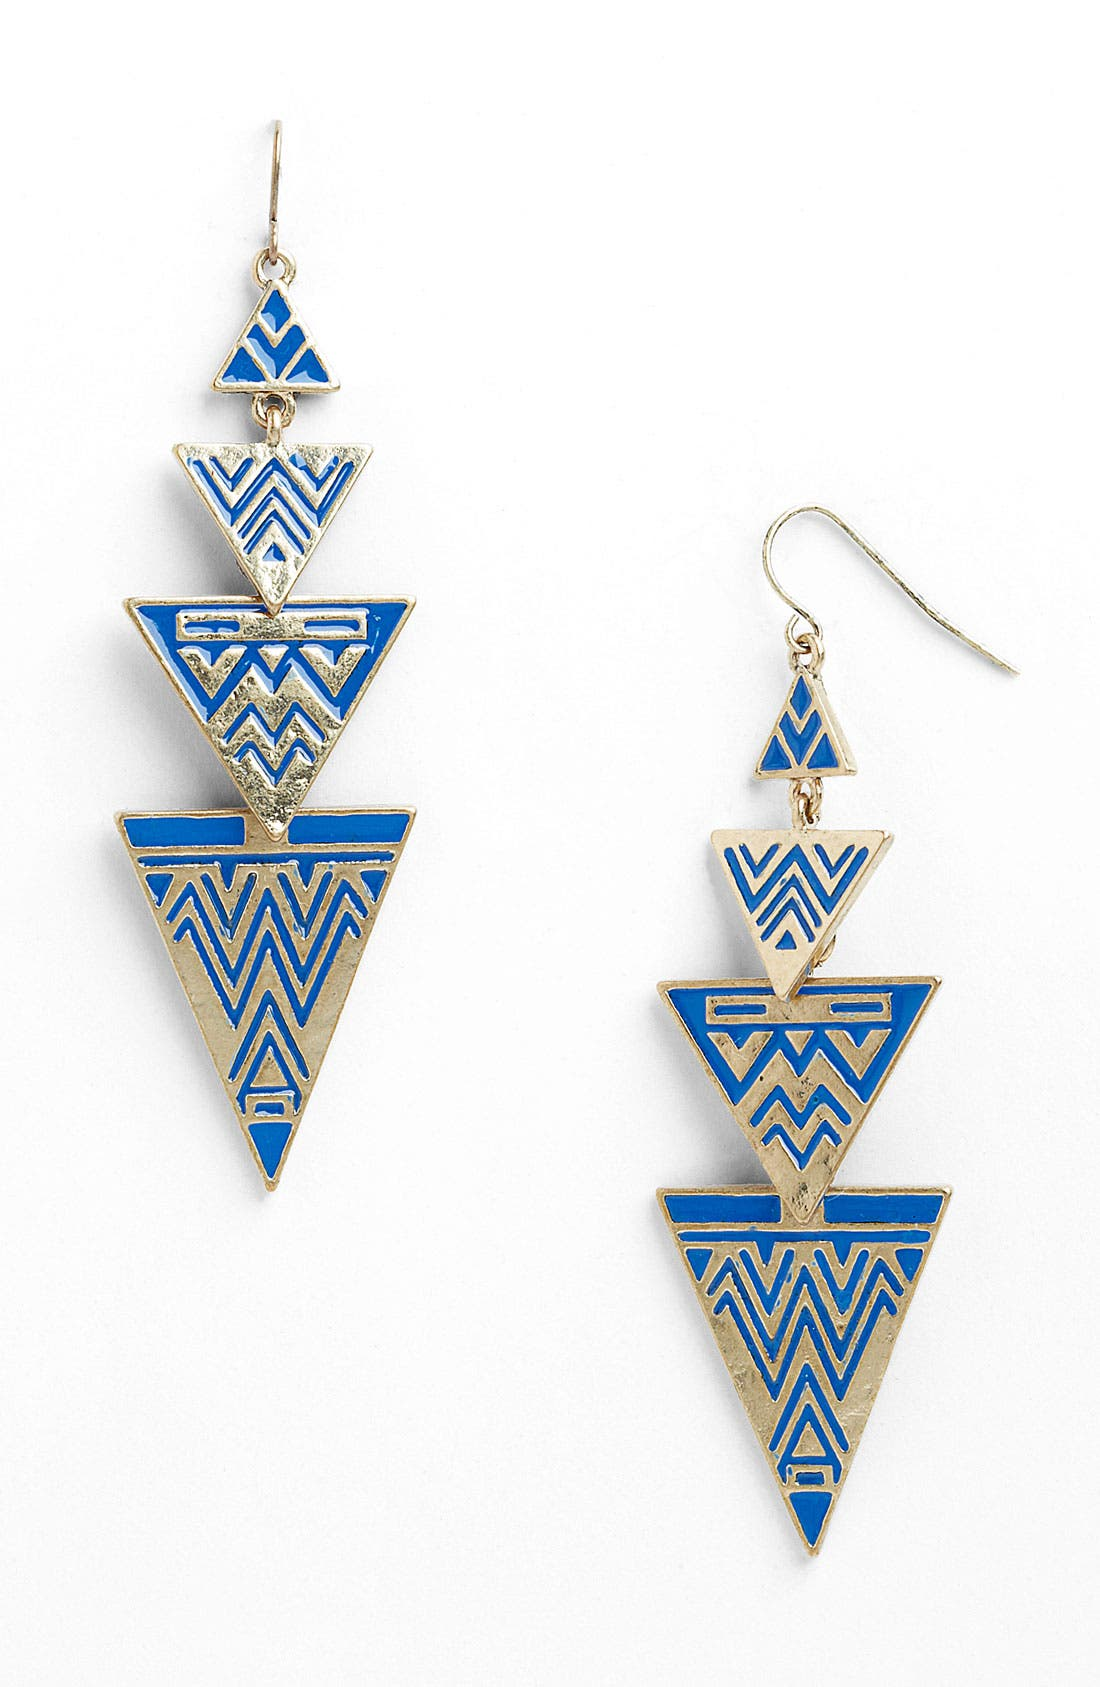 Main Image - Stephan & Co. Enameled Triangle Chandelier Earrings